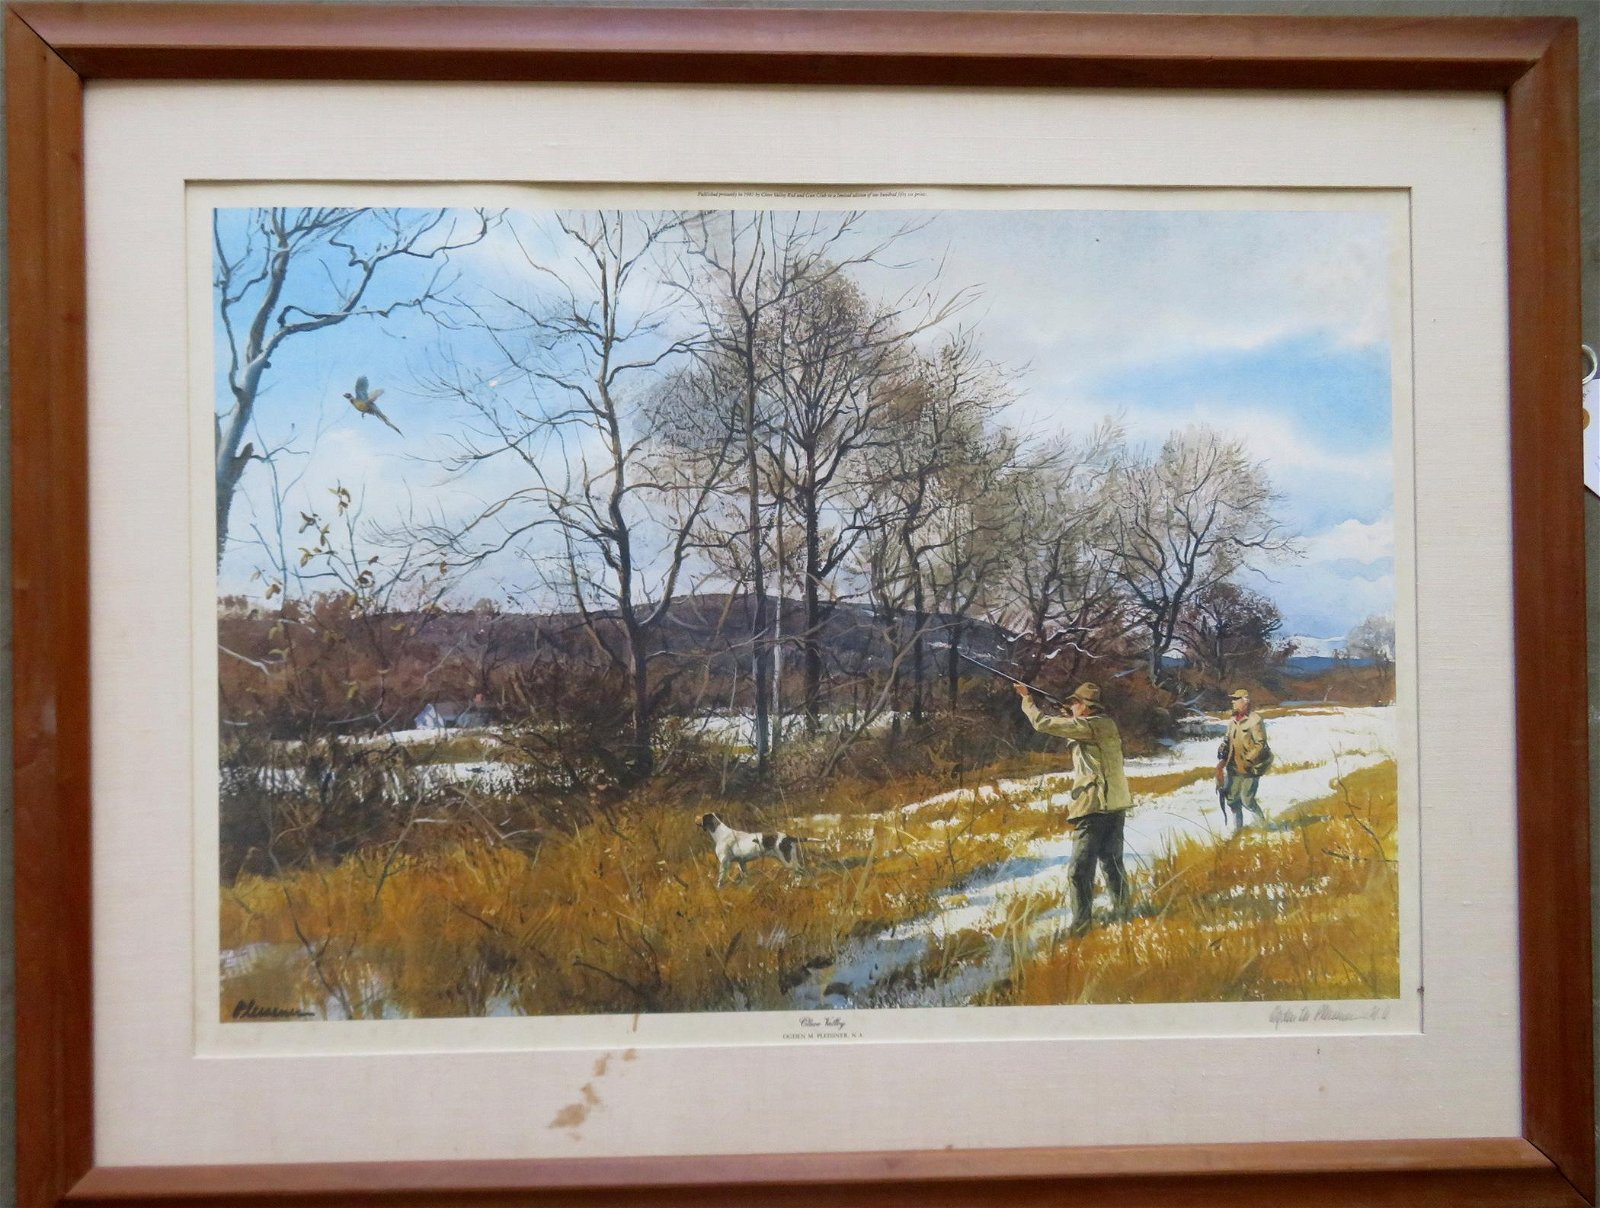 Limited edition sporting print of pheasant hunters in